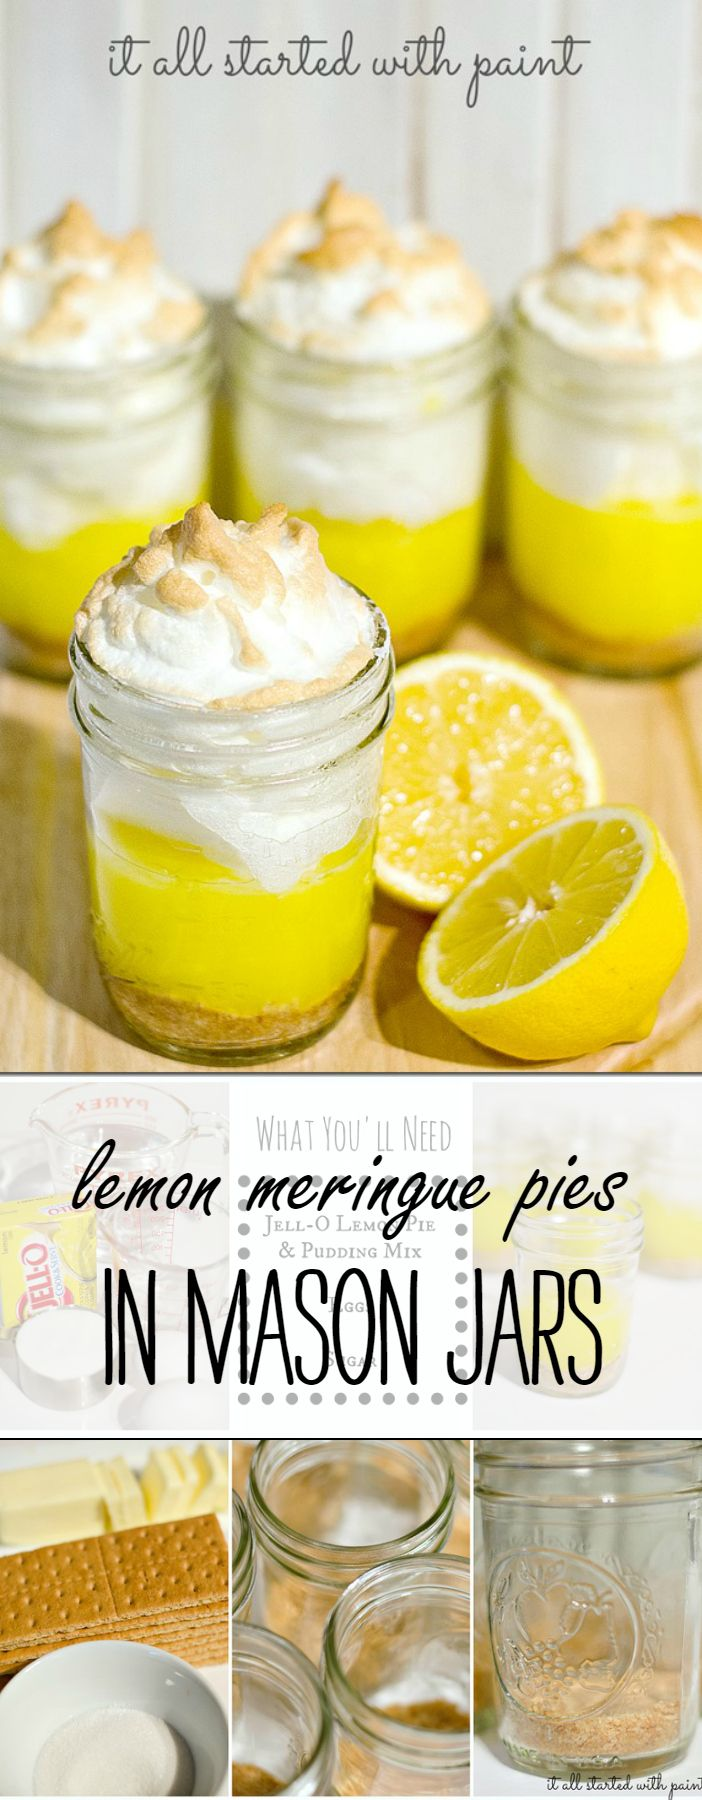 mason jar lemon meringue pies - It All Started With Paint